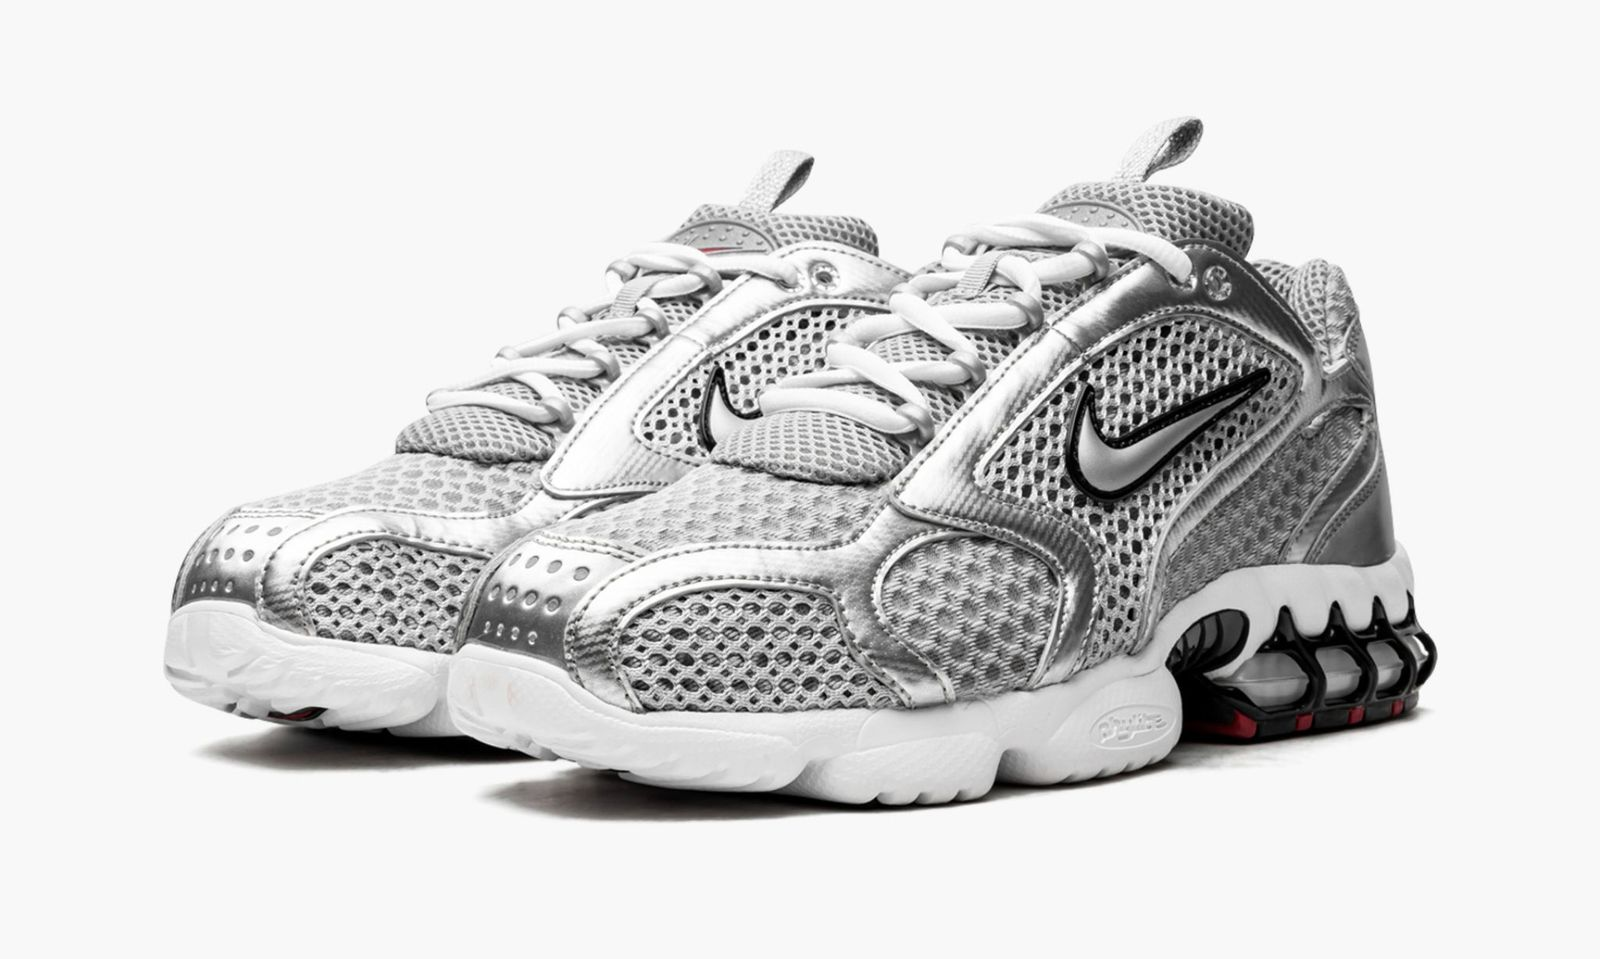 11 of the Best Nike Air Zoom Spiridon Cage 2 Colorways